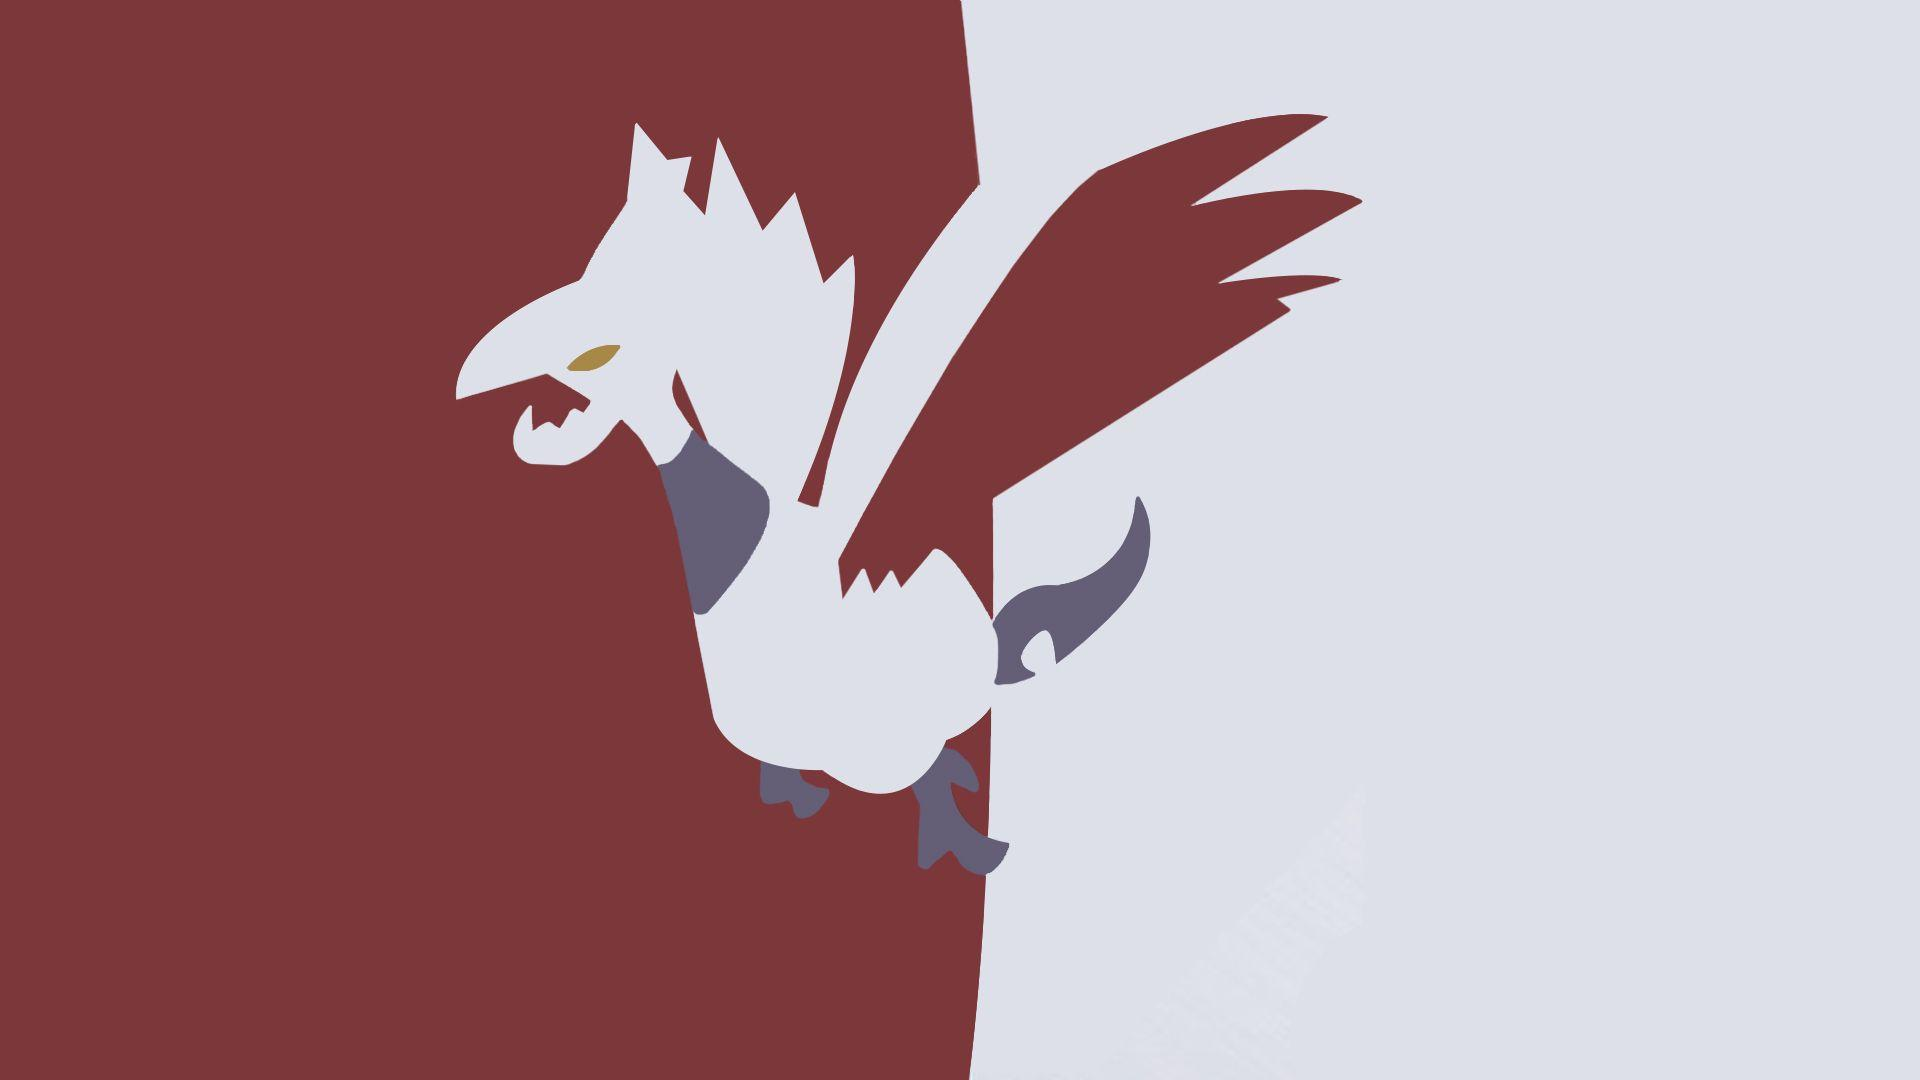 Modern backgrounds image of Skarmory